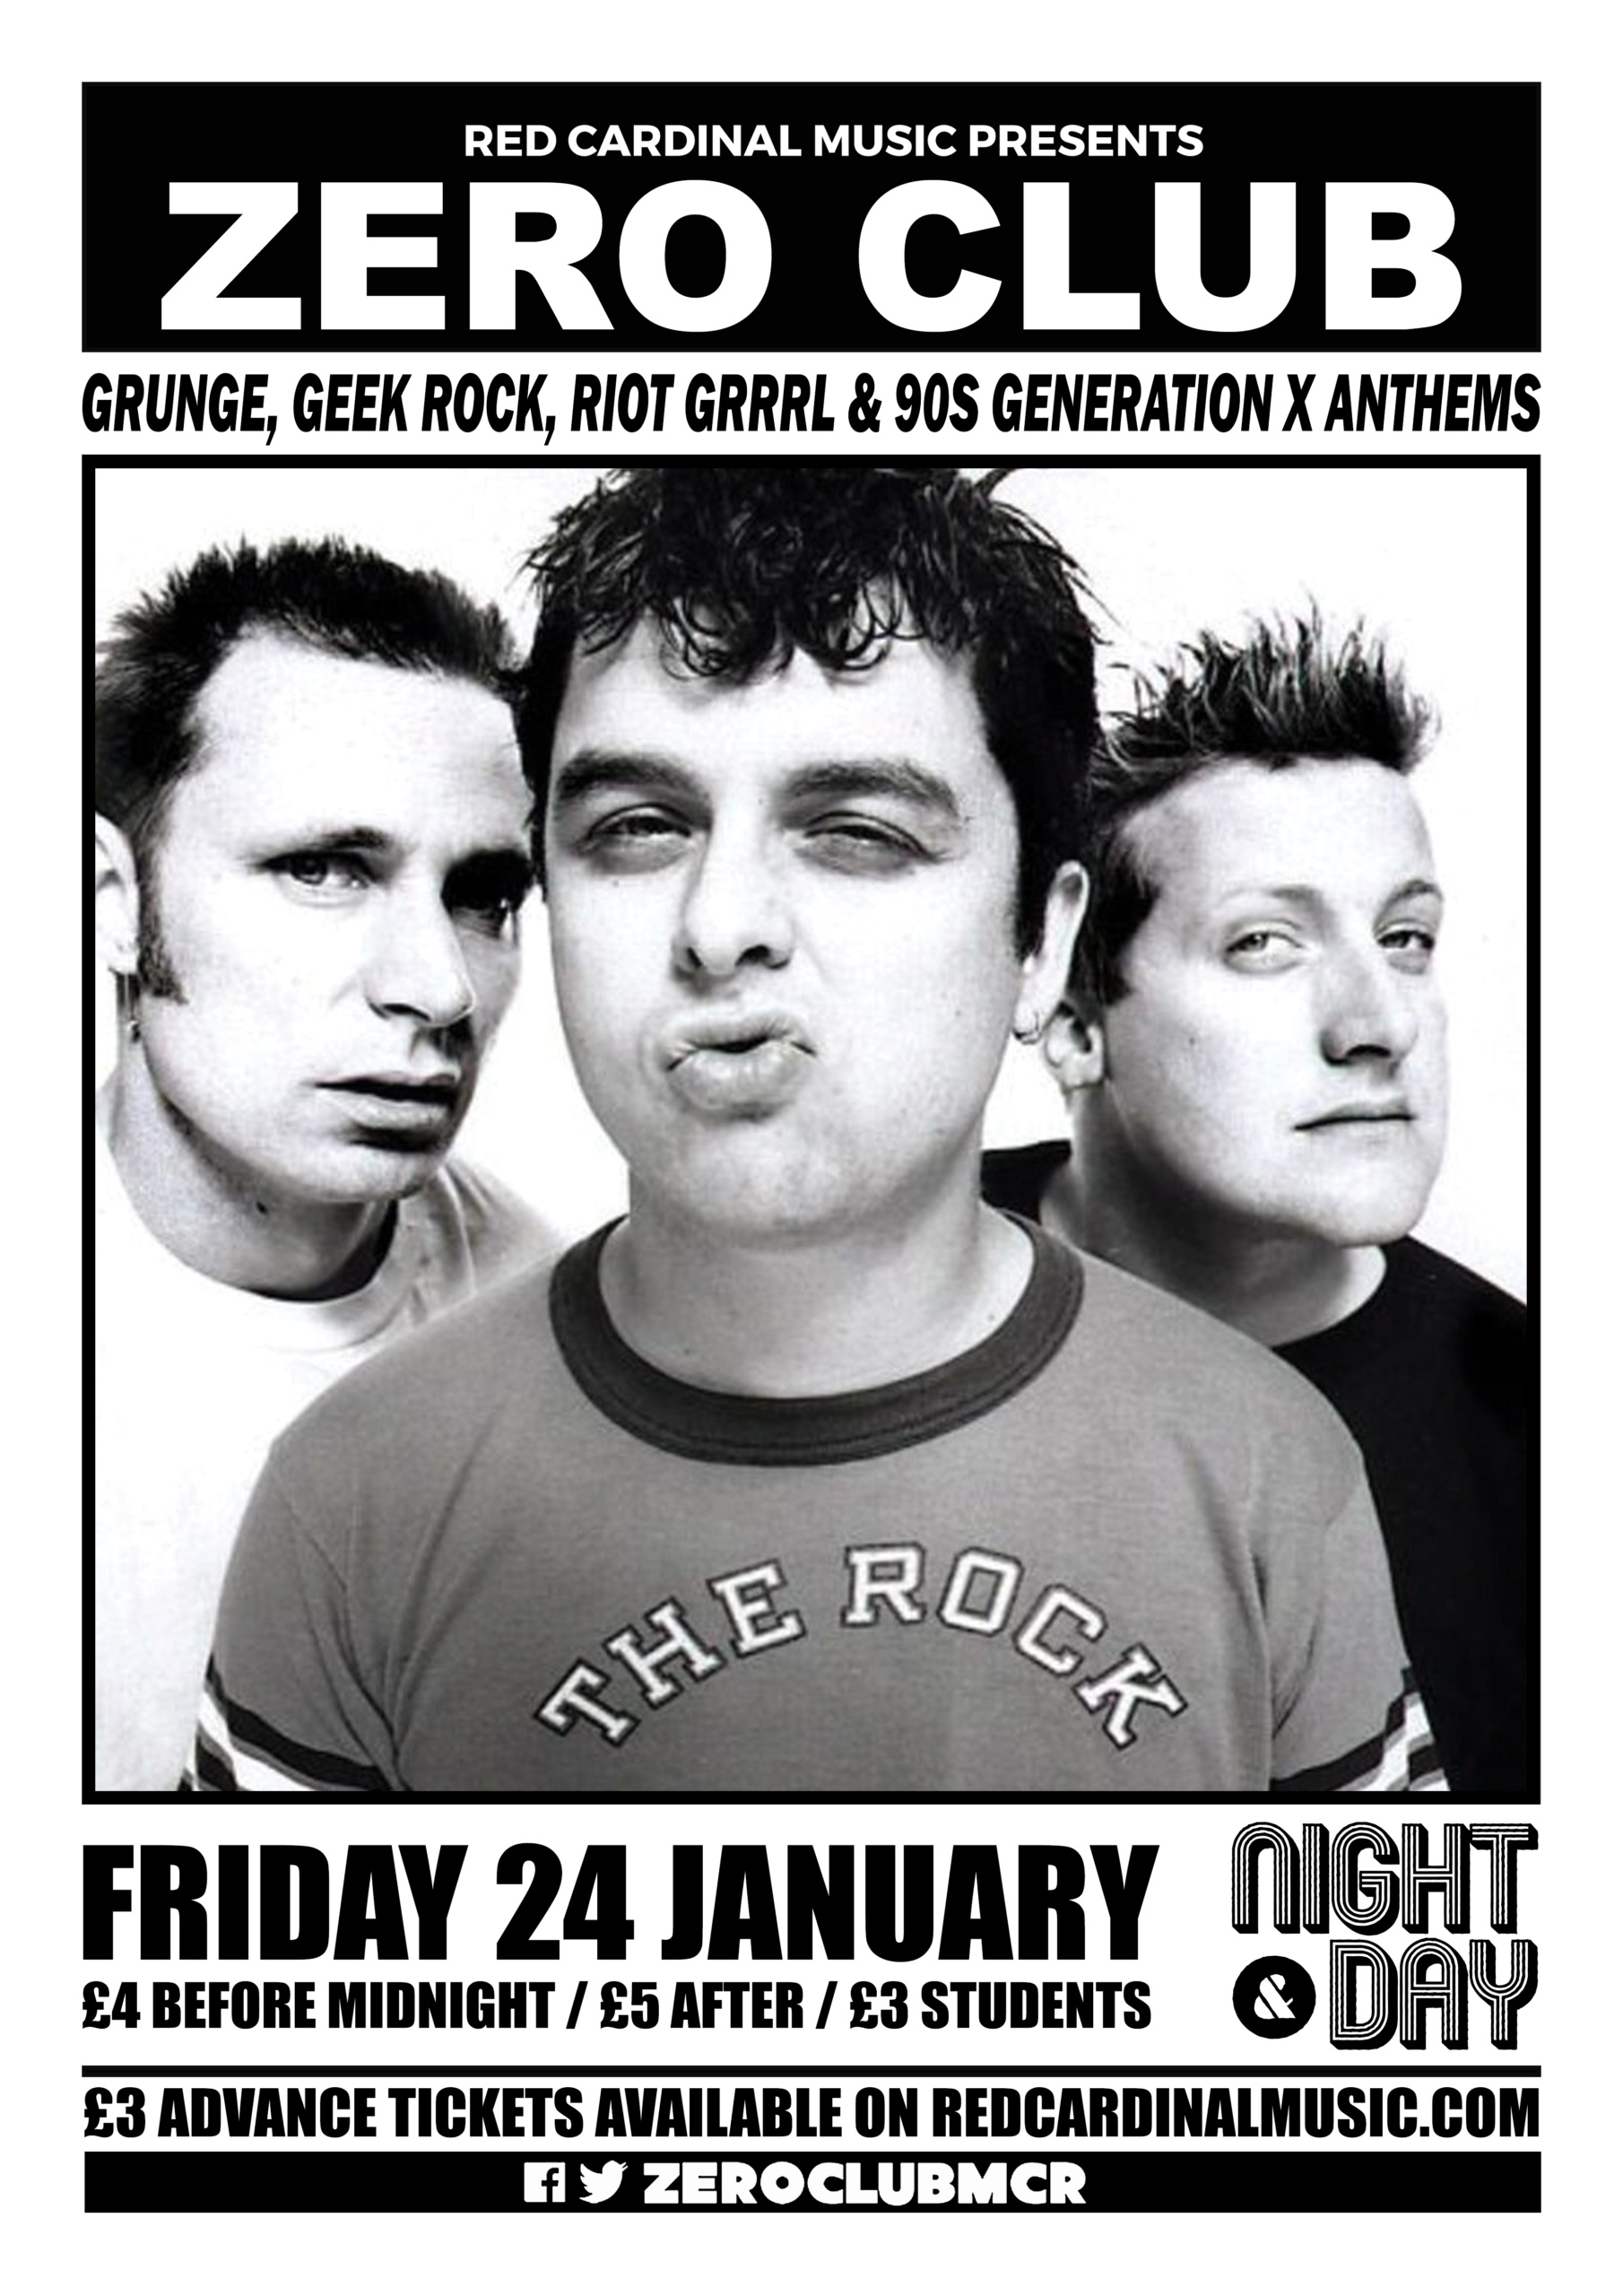 Zero Club - January 2020 - Night & Day - Poster - Red Cardinal Music - Manchester